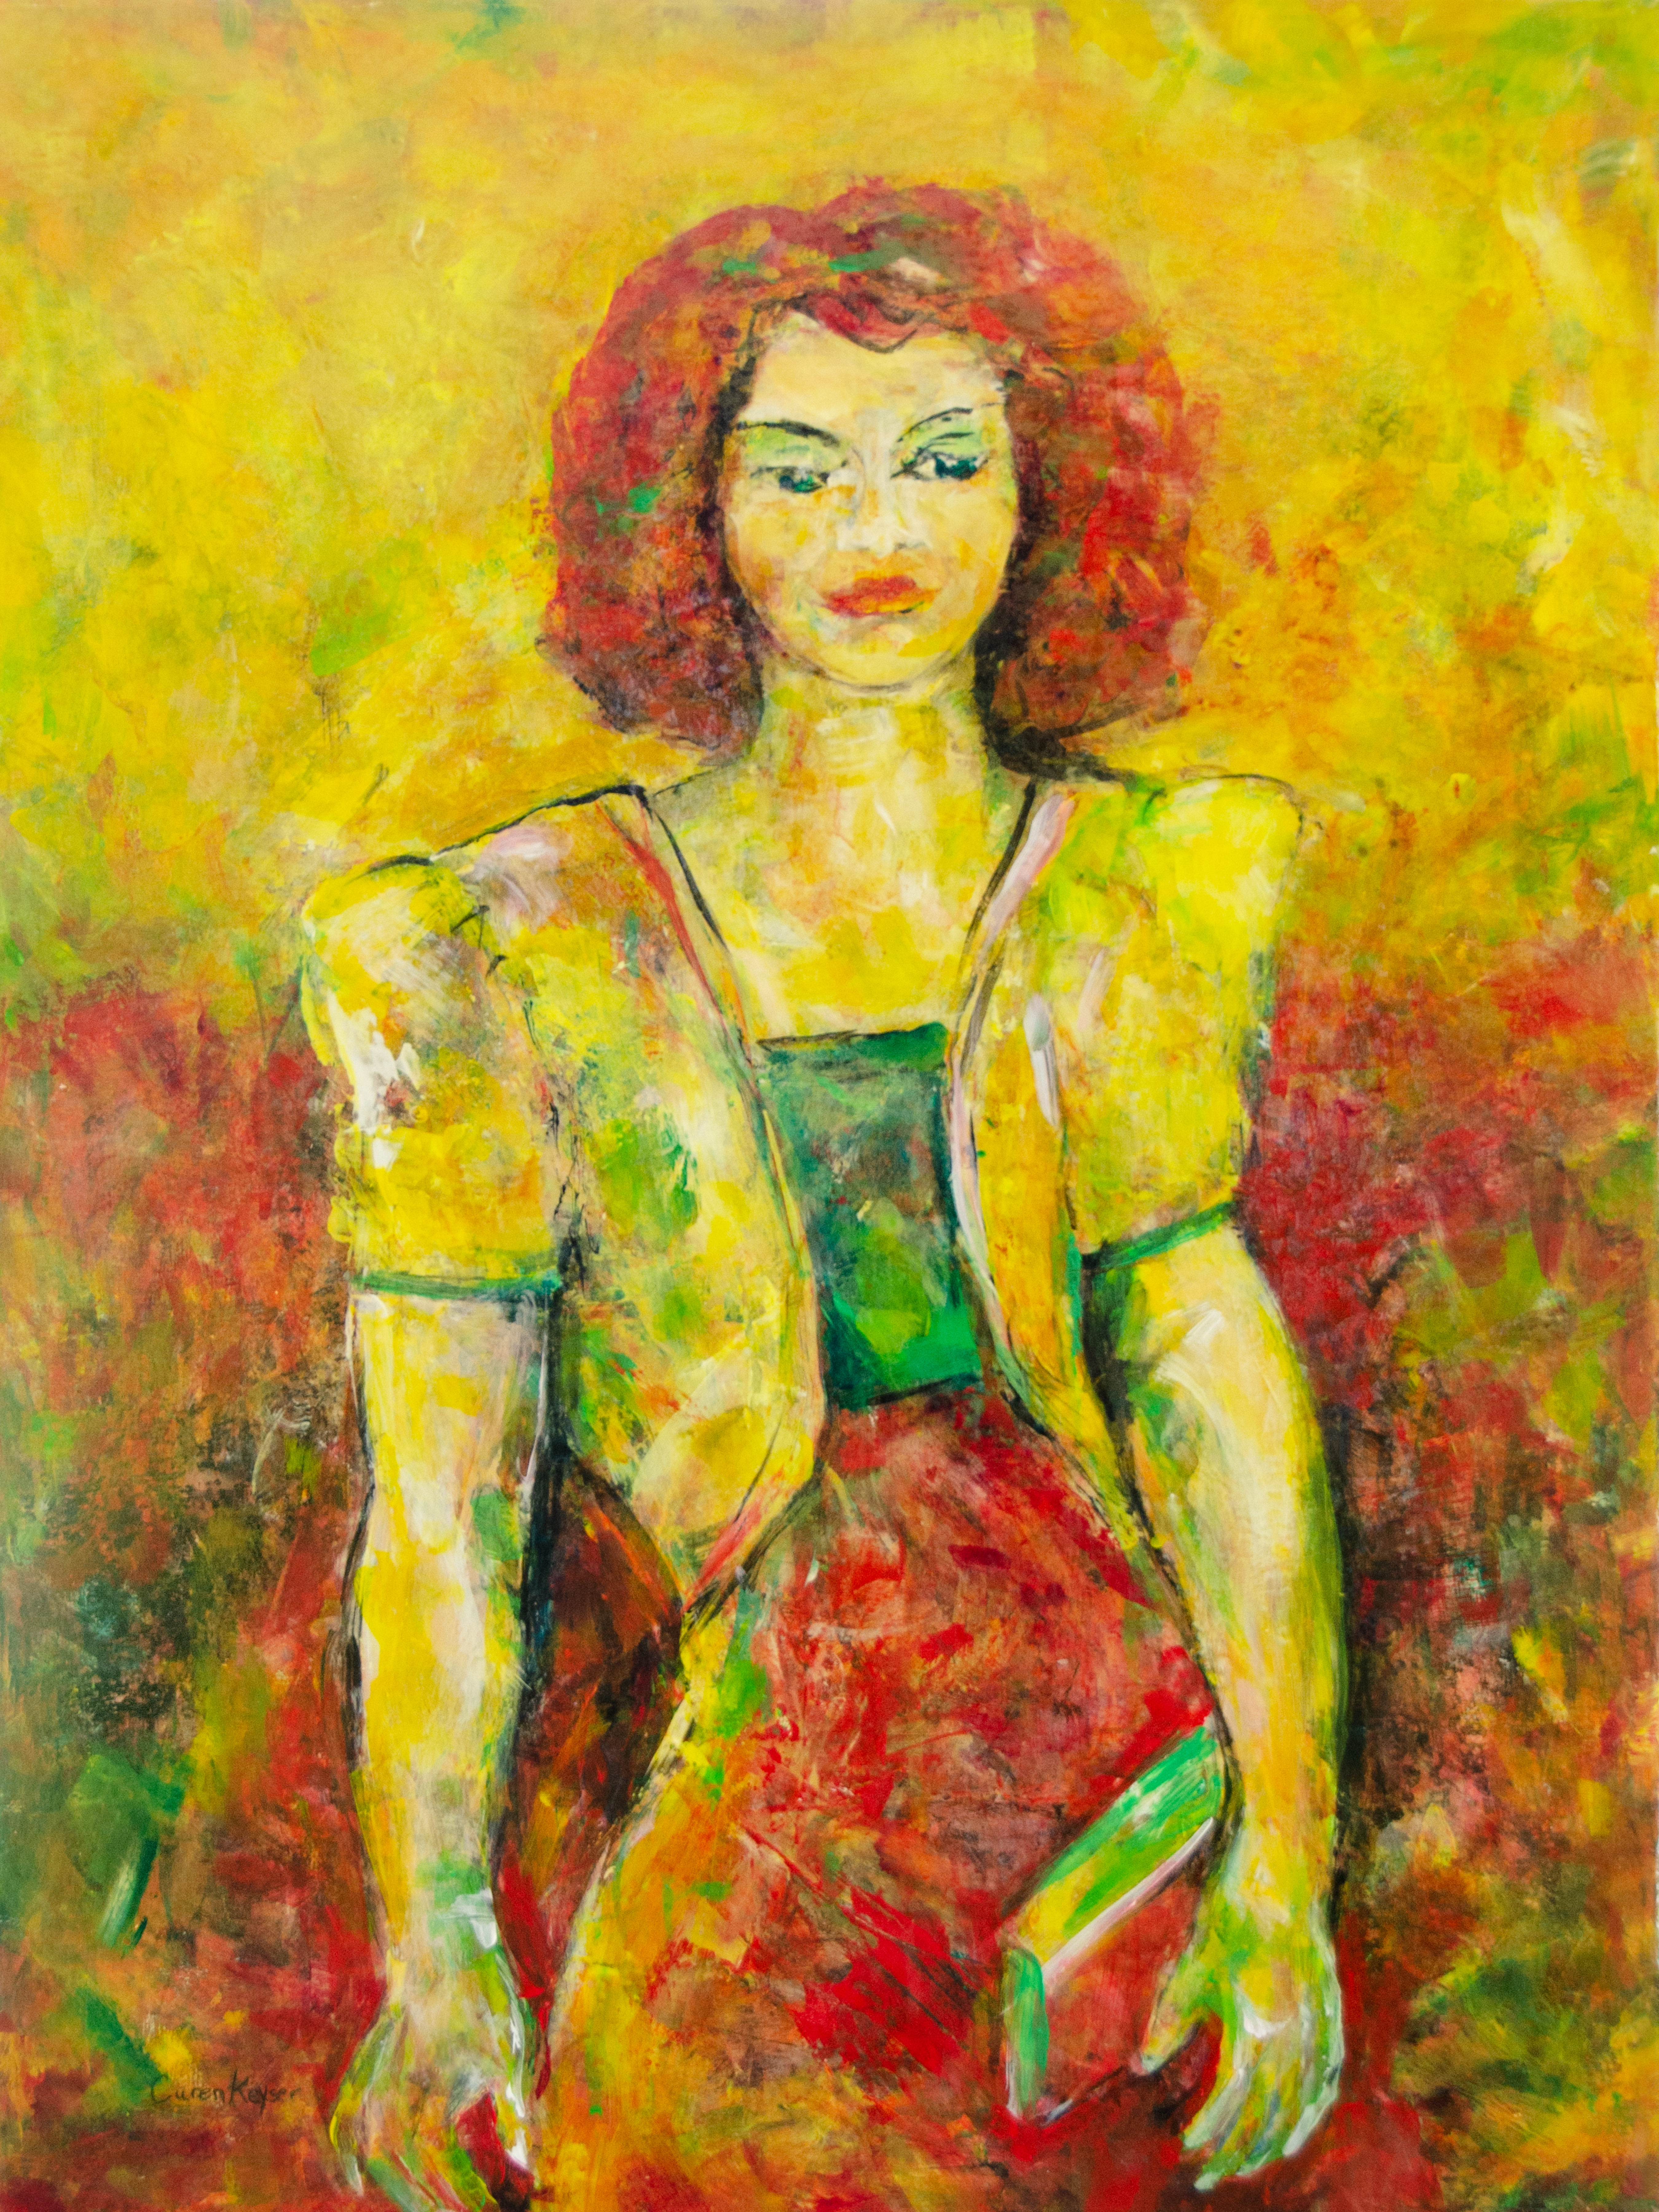 Caren Keyser; Yellow Jacket, 2018, Original Painting Acrylic, 18 x 24 inches. Artwork description: 241 This painting has grown out of many many layers of acrylic paint.  The woman is wearing a yellow jacket with padded shoulders and carrying a clutch purse.  Her red hair is in brilliant contrast to the yellow energetic background.  The lower red background abounds with interesting brush ...